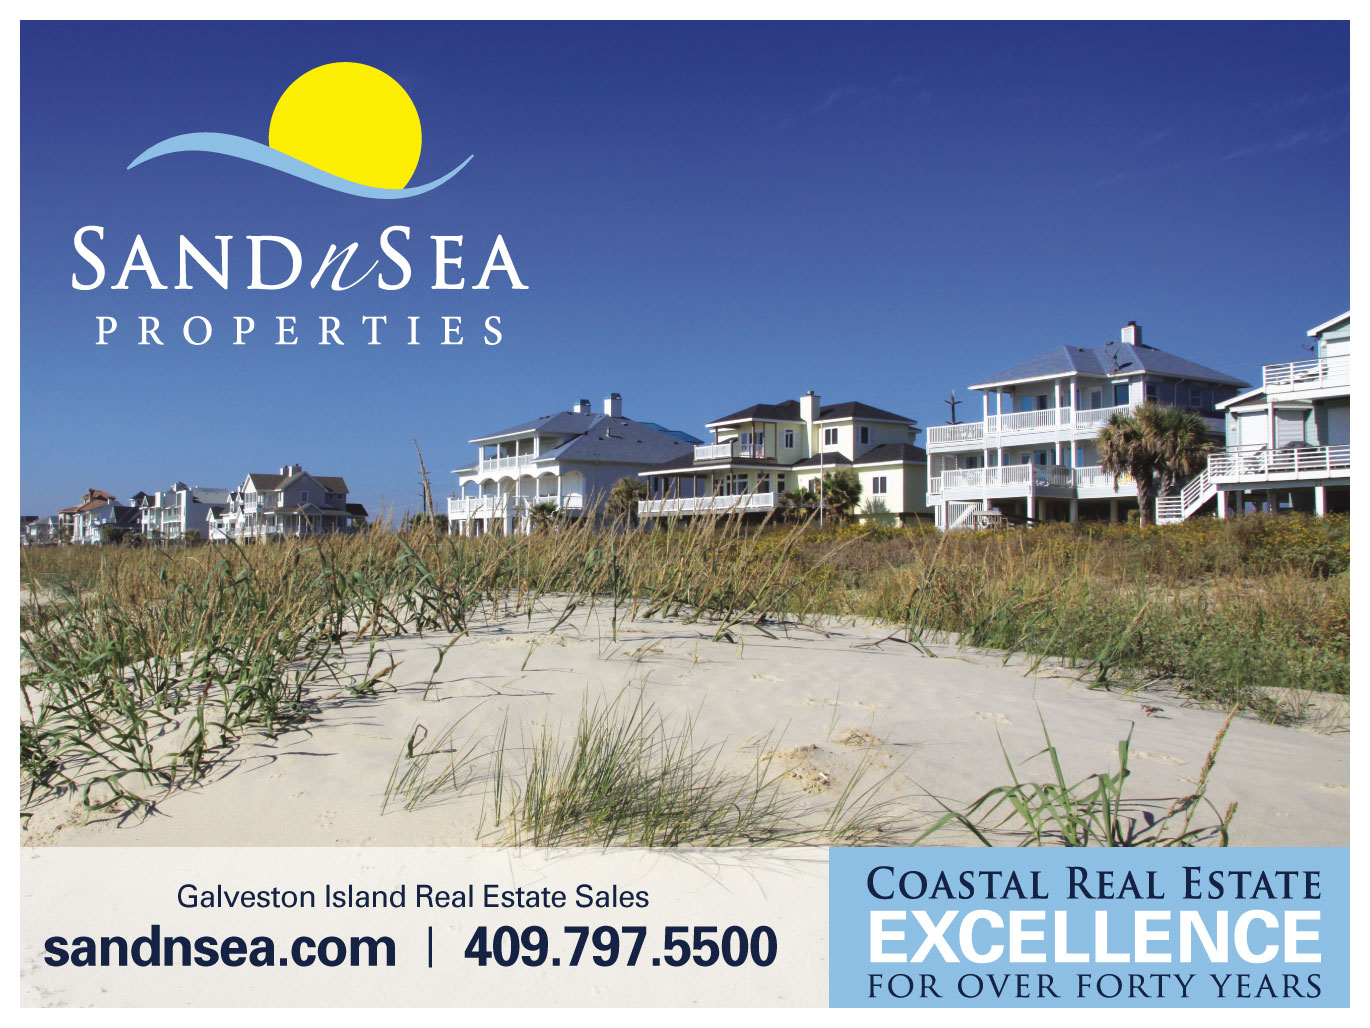 sand n sea properties galveston tx